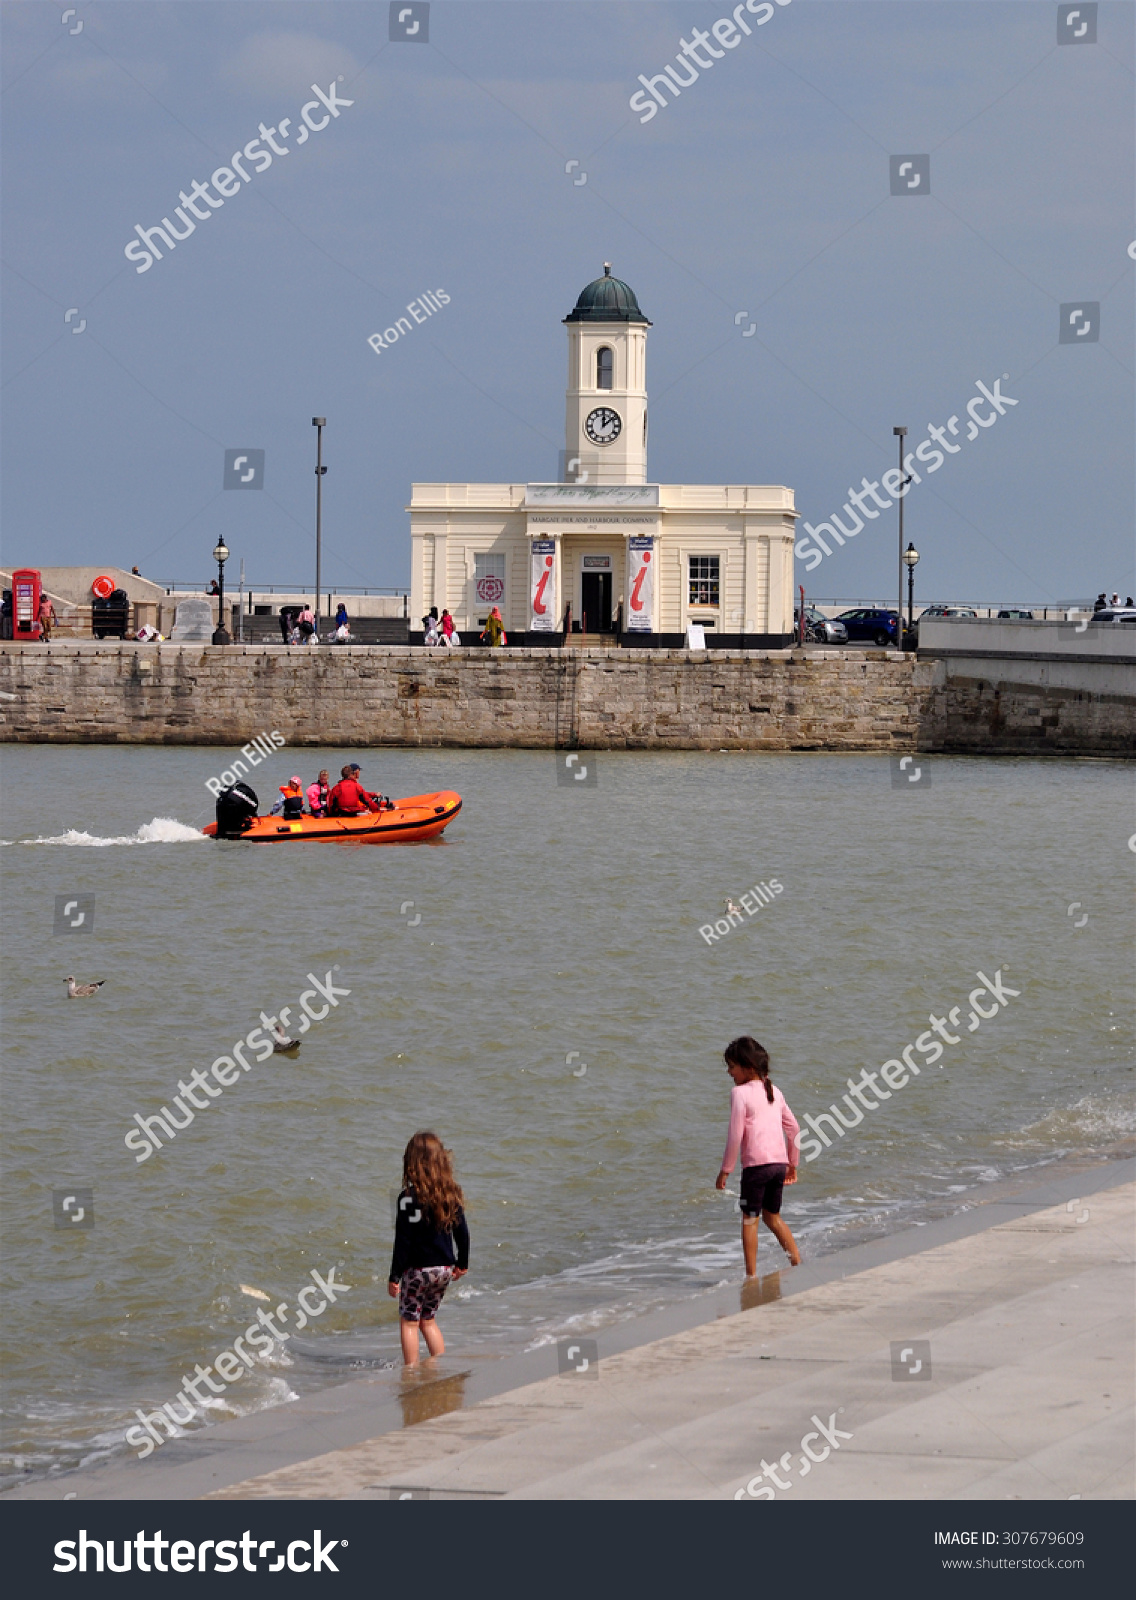 Margate Kent Uk August 15 2015 Stock Photo (Edit Now) 307679609